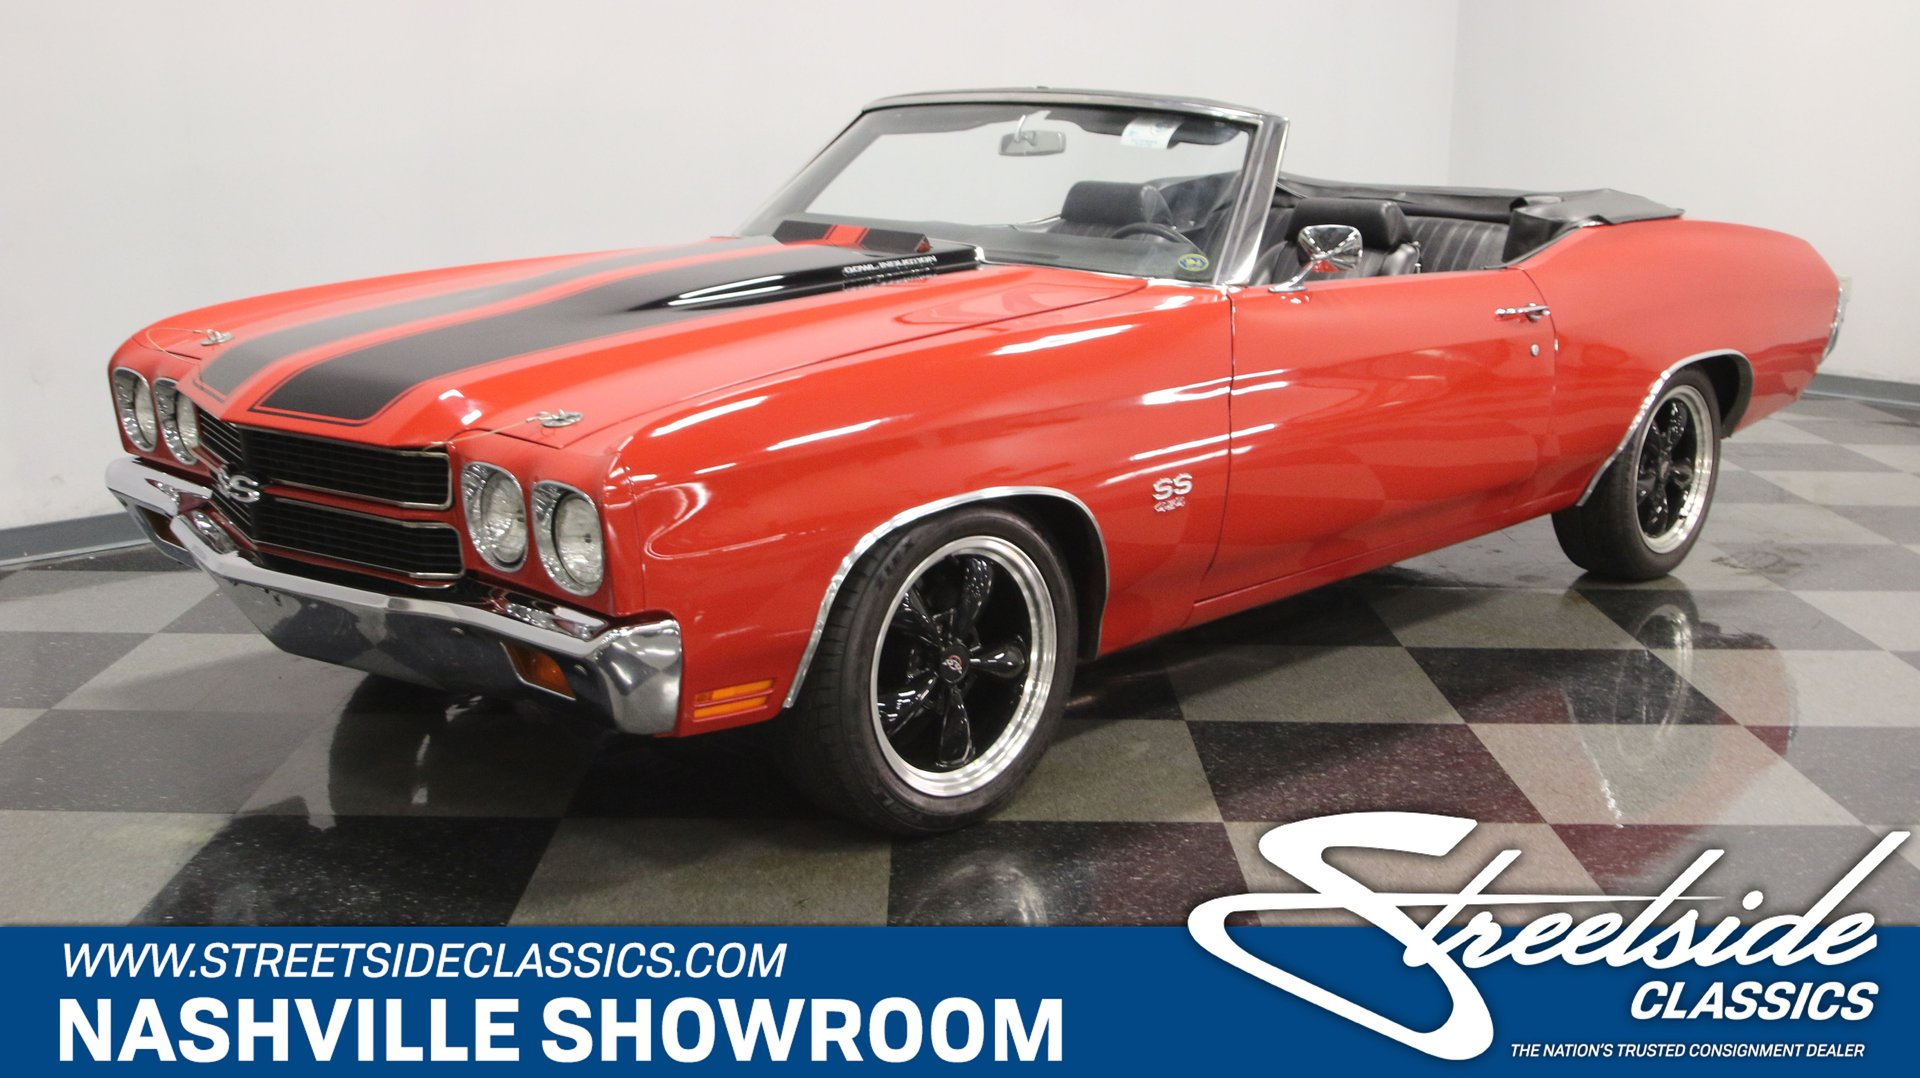 1970 Chevrolet Chevelle SS 454 Tribute Convertible for sale #166877